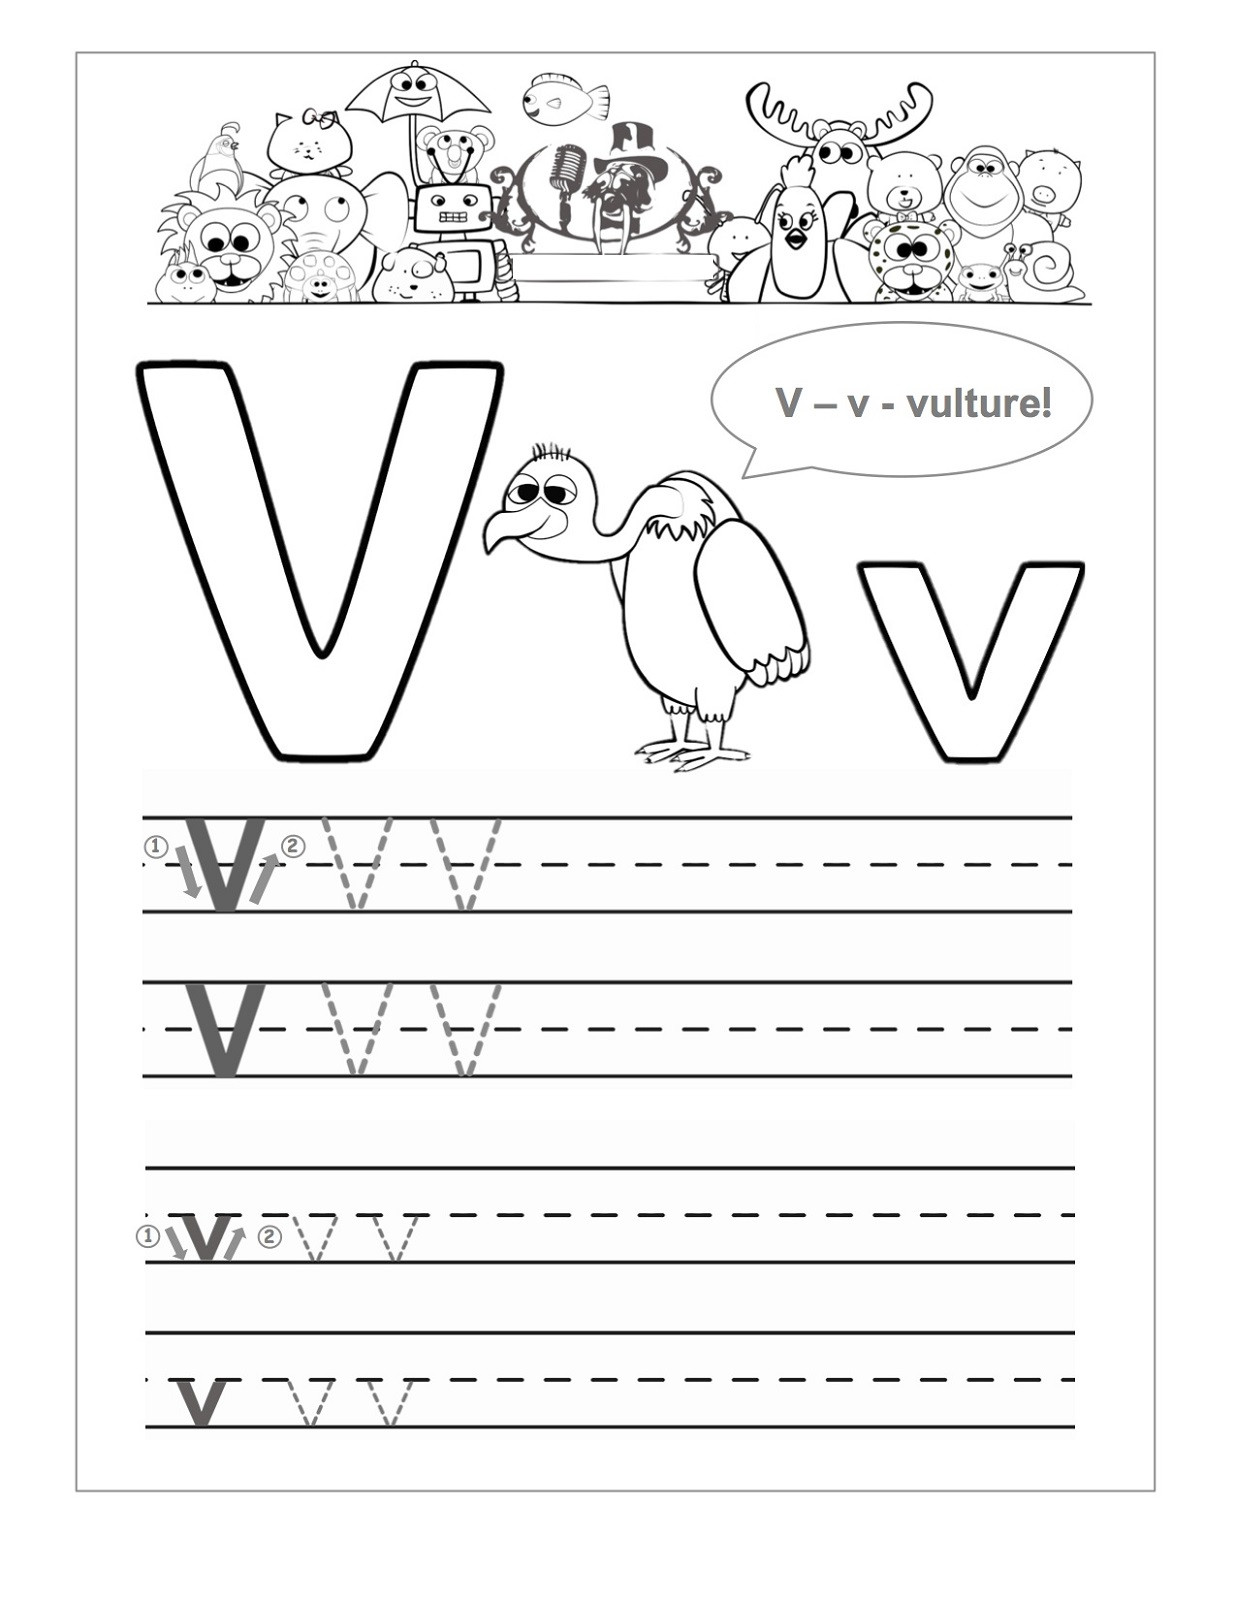 Letter V Worksheets Preschool Letter V Worksheets to Print